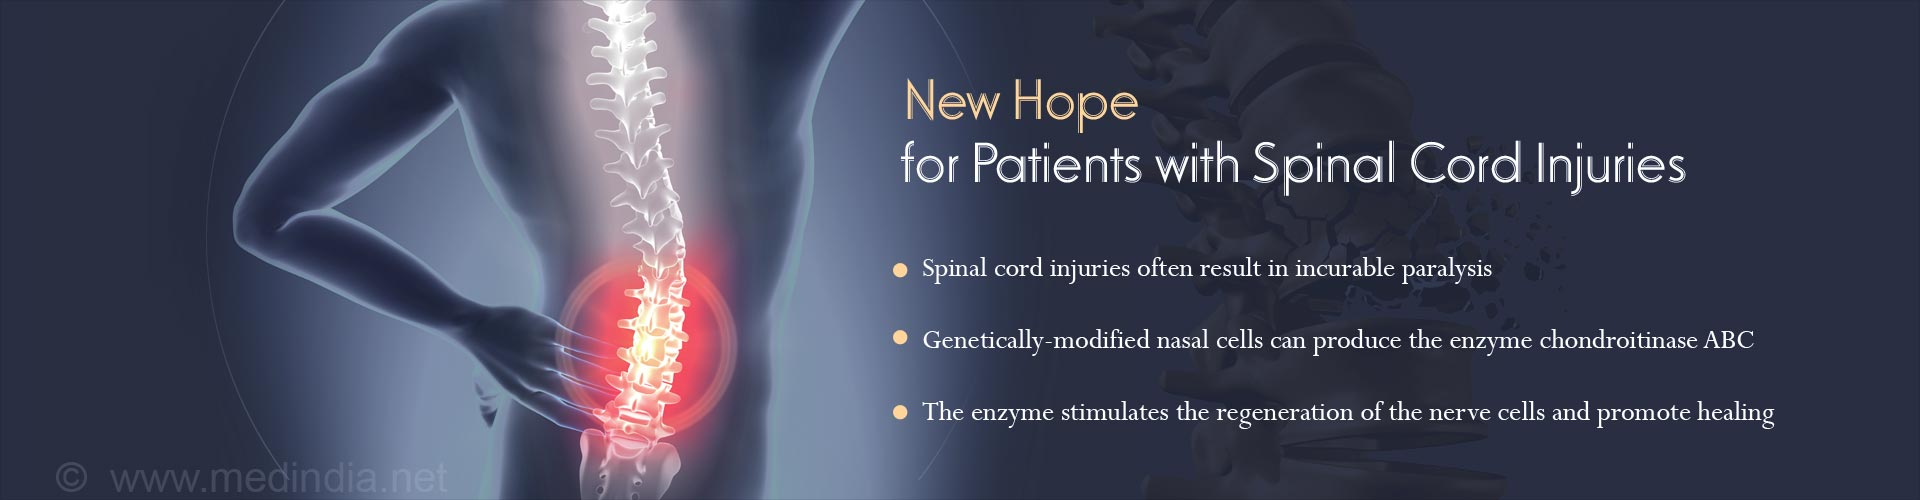 Genetically-Modified Nasal Cells can Potentially Treat Spinal Cord Injuries